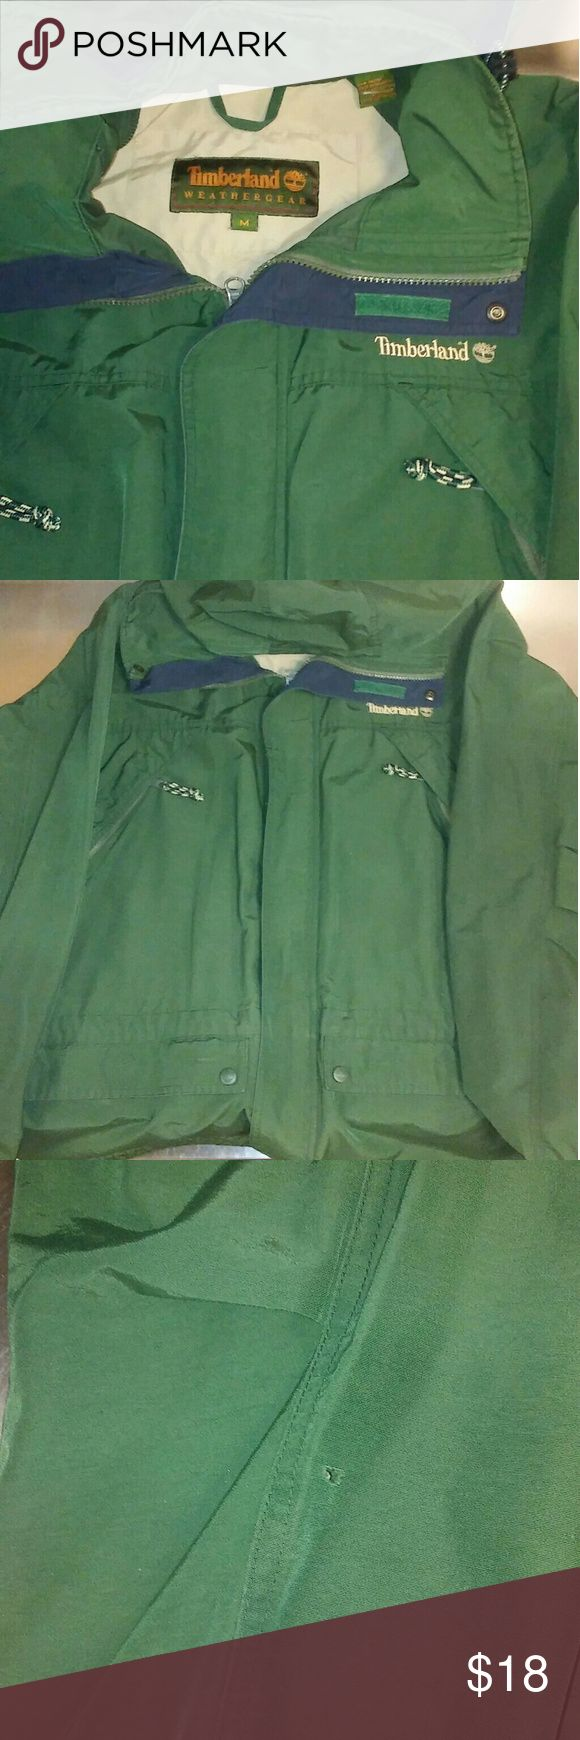 Timberland Weathergear Medium Jacket w Hood This is in great shape. It is medium sized. Weathergear branch of Timberland. Hood is retractable. Has a very small hole shown in picture 3 on the sleeve. Very small. And a spot on the bottom of the back of it. Still inside is in great shape. Timberland Jackets & Coats Raincoats